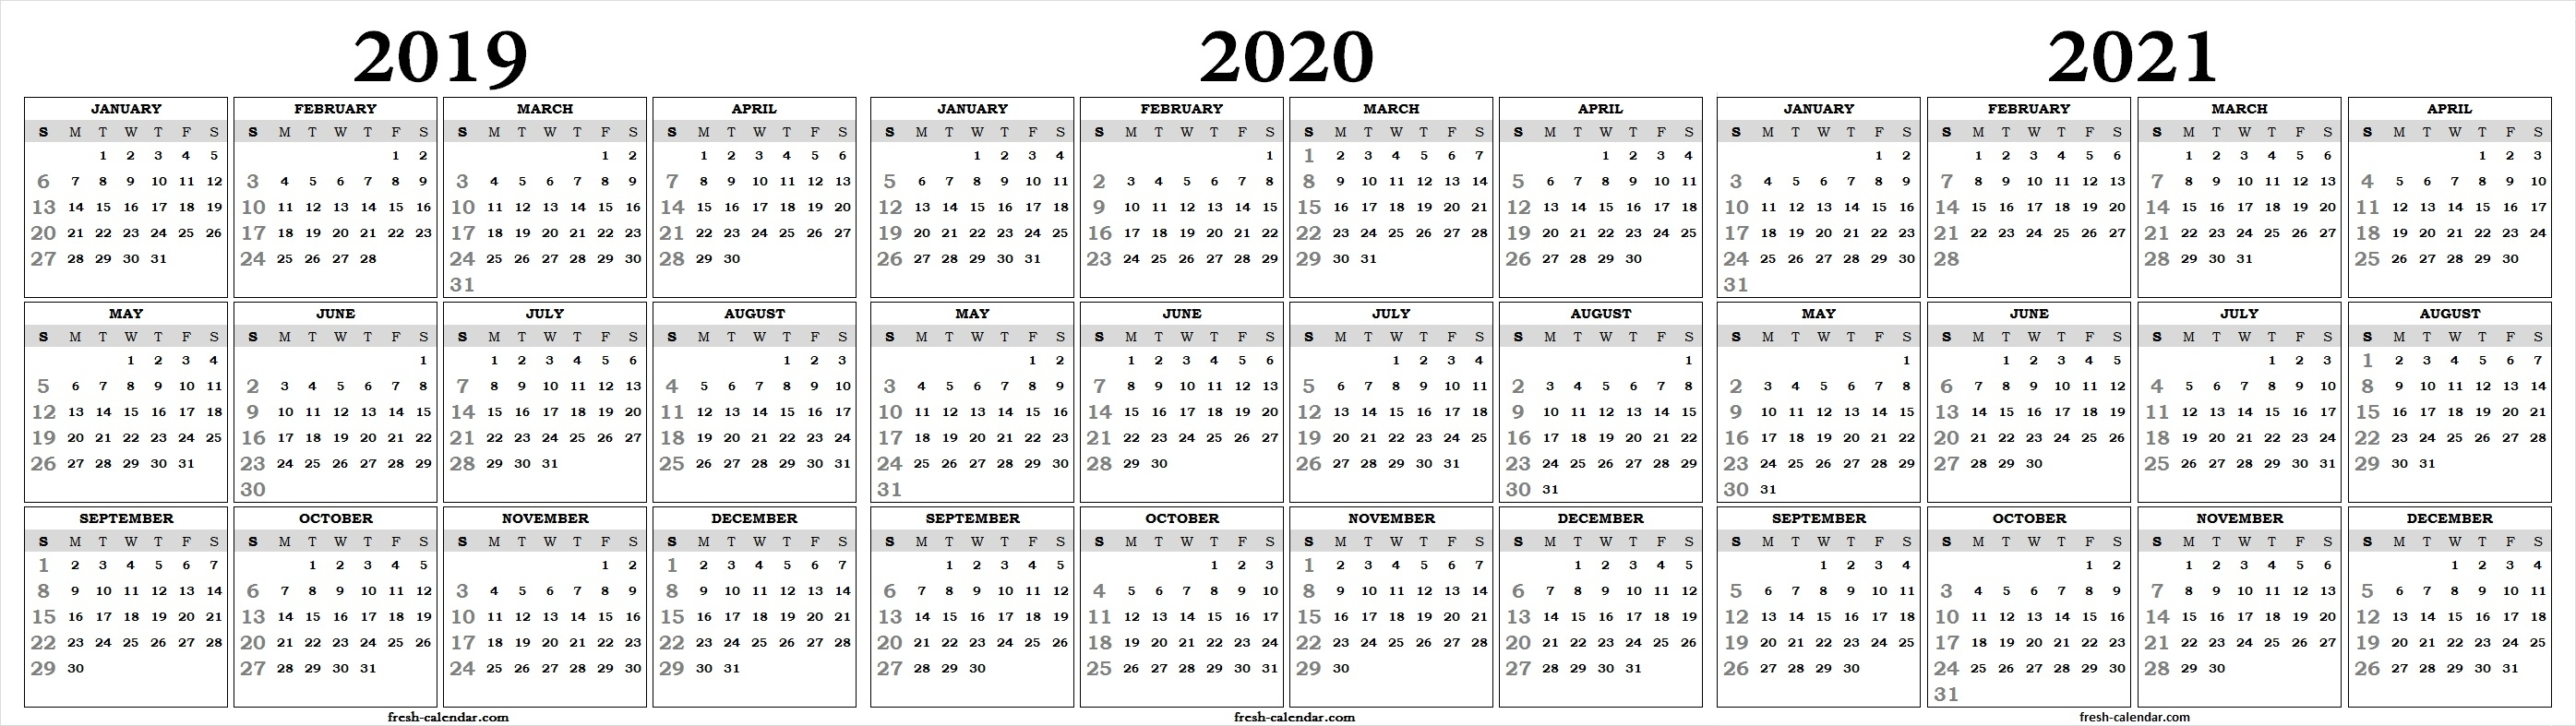 Three Yearly 2019 2020 2021 Calendar Printable Free | Blank Template pertaining to Calendar Yearly 2019 2020 2021